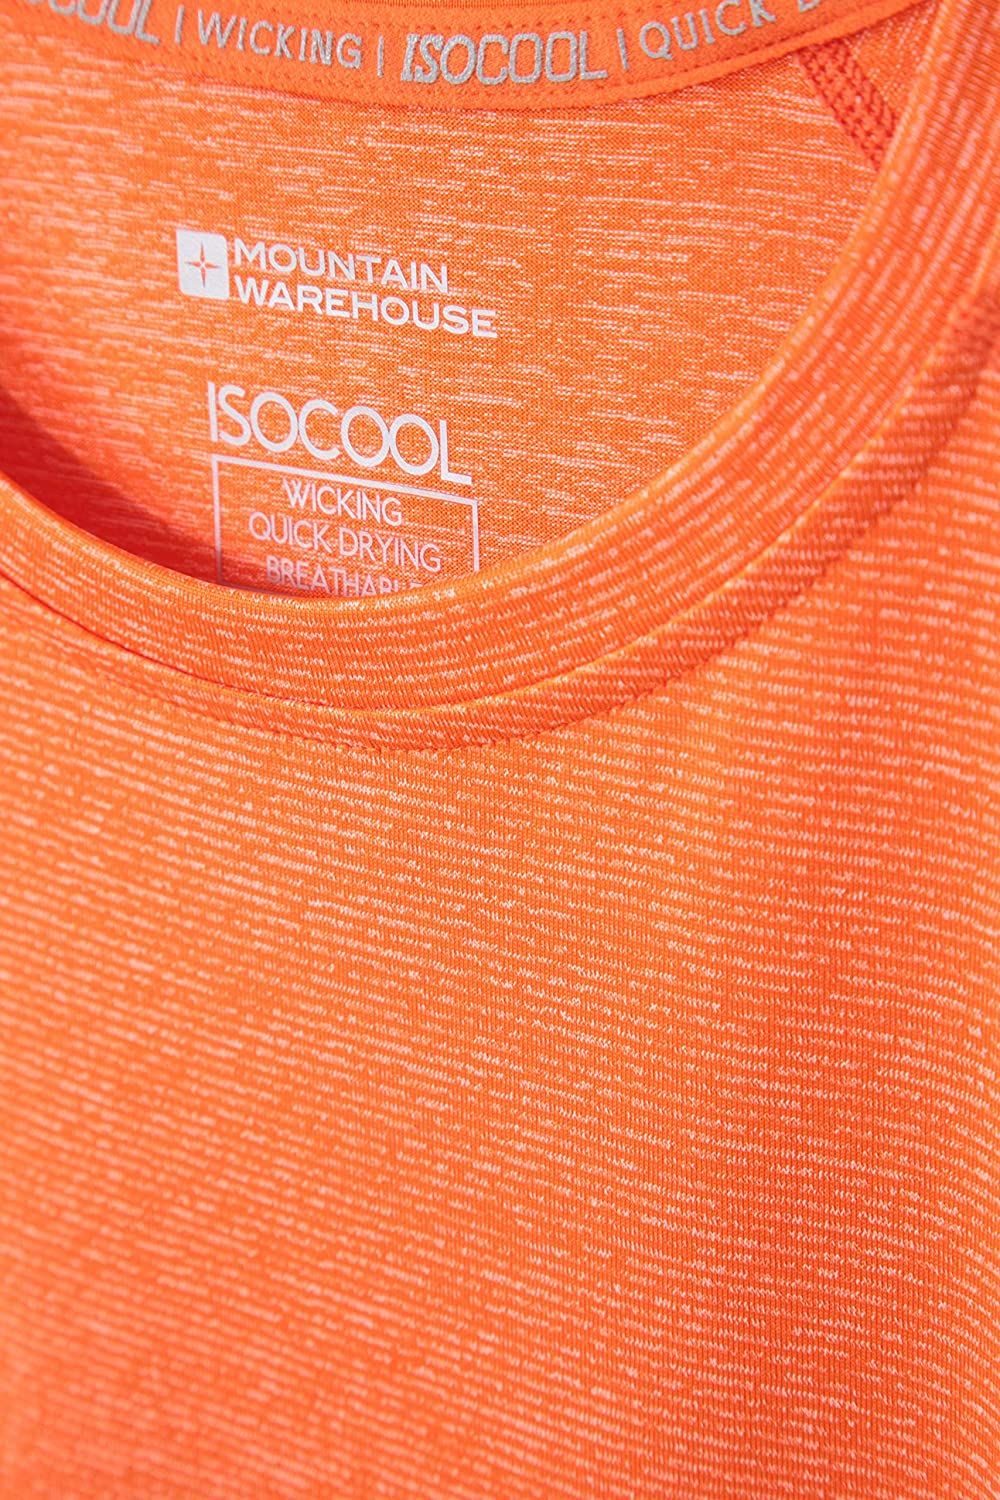 Lightweight Tshirt Breathable Top UPF30+ UV Protection T-Shirt Quick Dry Hiking /& Daily Mountain Warehouse IsoCool Agra Mens Striped Tee for Travelling